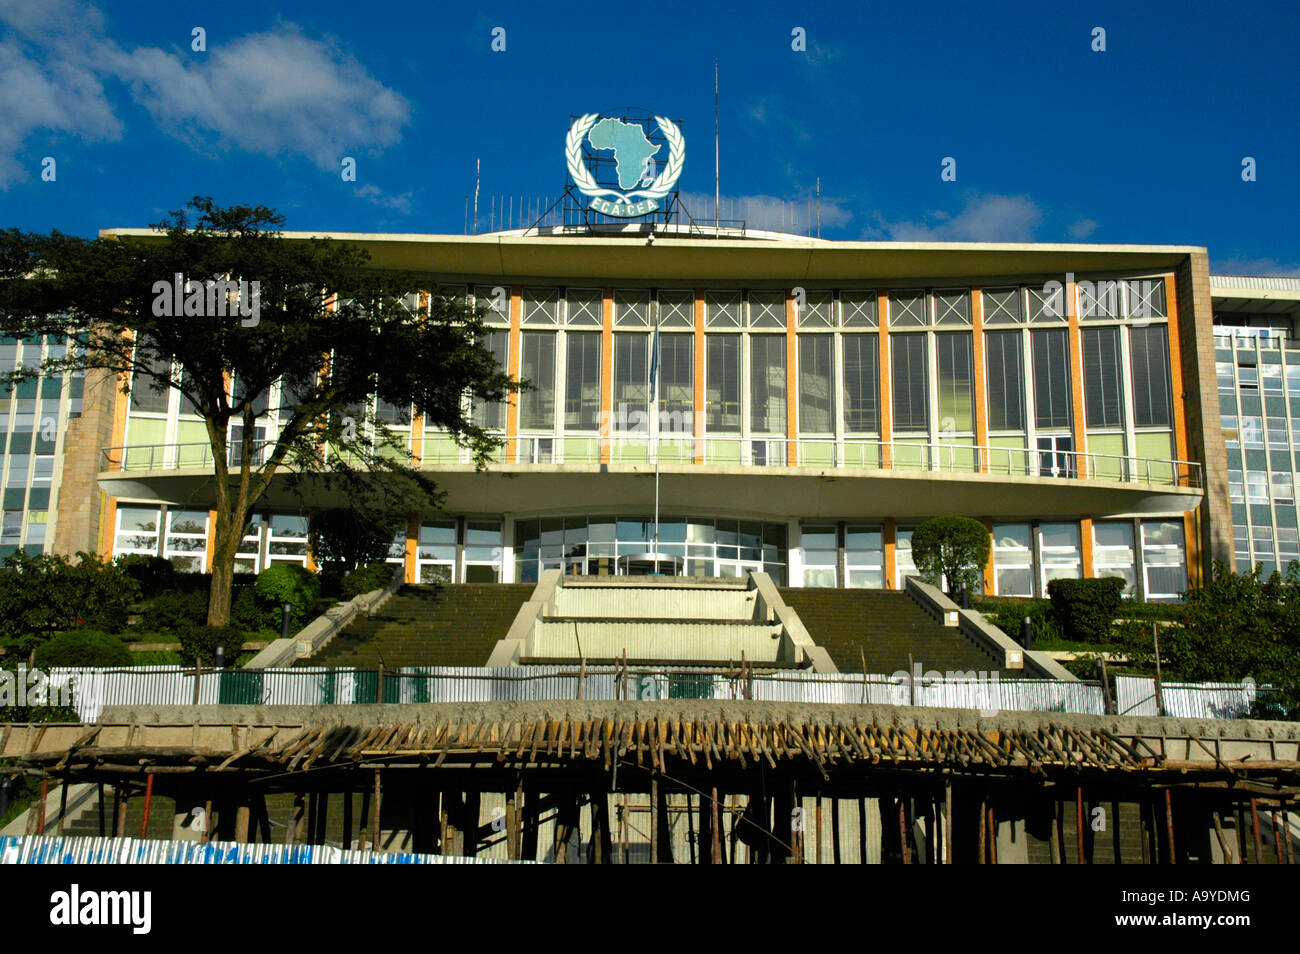 Africa hall seat of OAU Addis Abeba Ethiopia Stock Photo